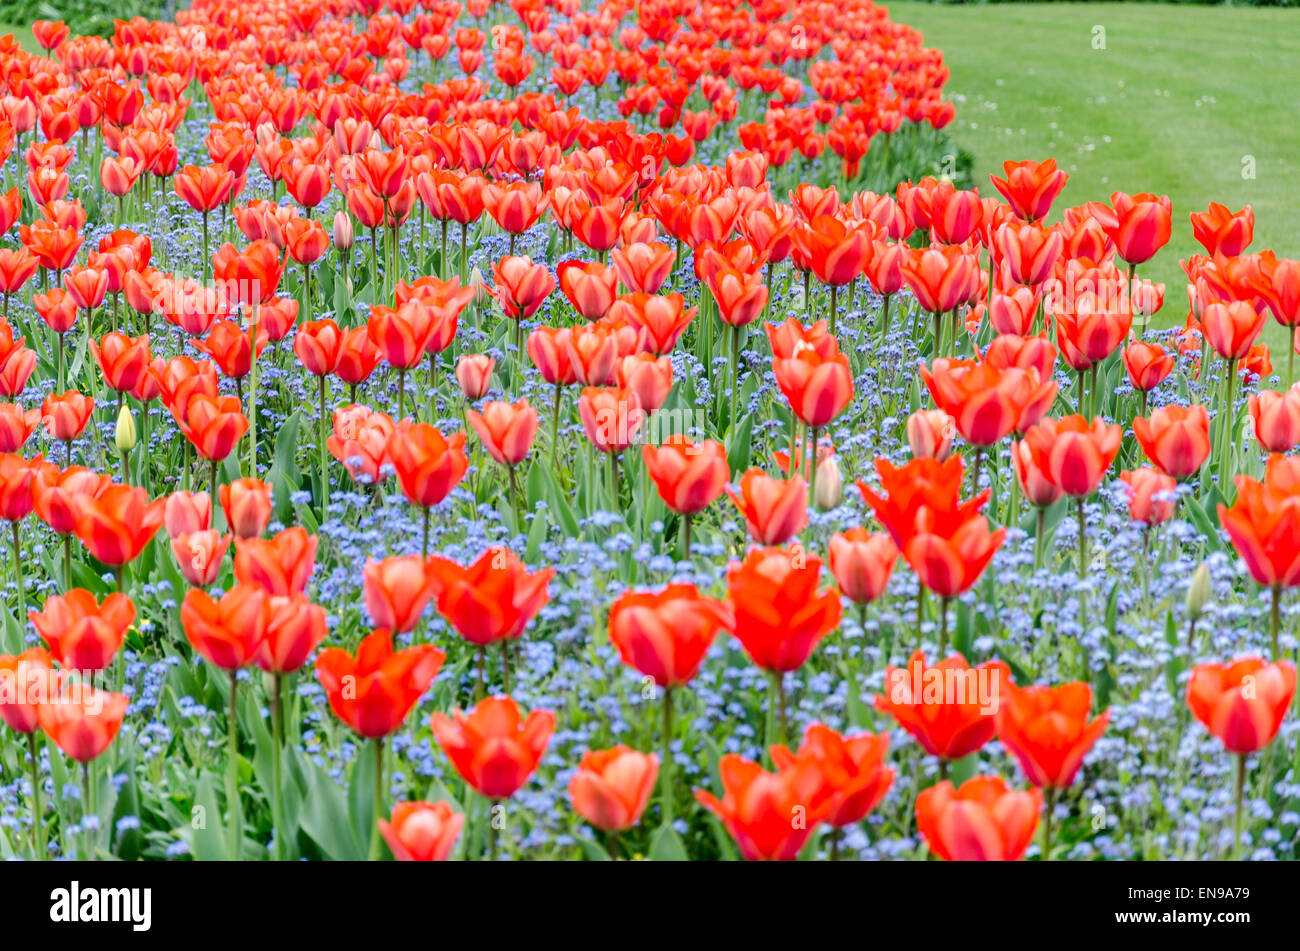 Red tulips in St James's Park, London, UK Stock Photo